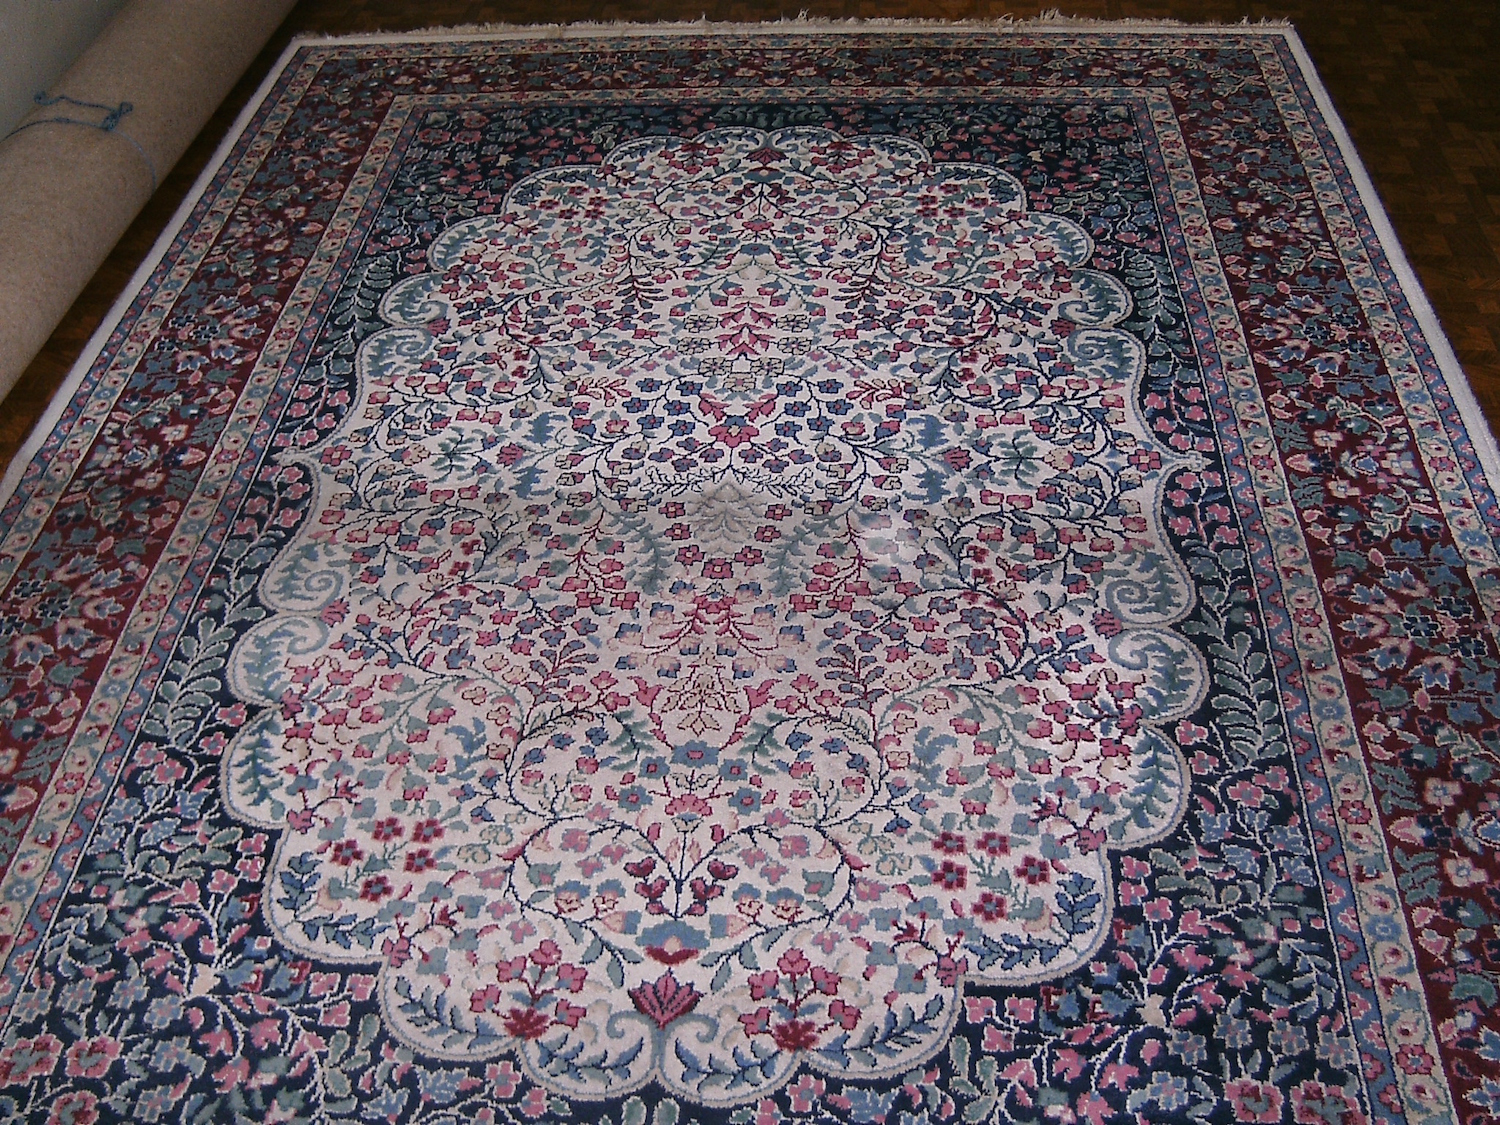 Oriental Carpet Area Rug Cleaning Services Jim